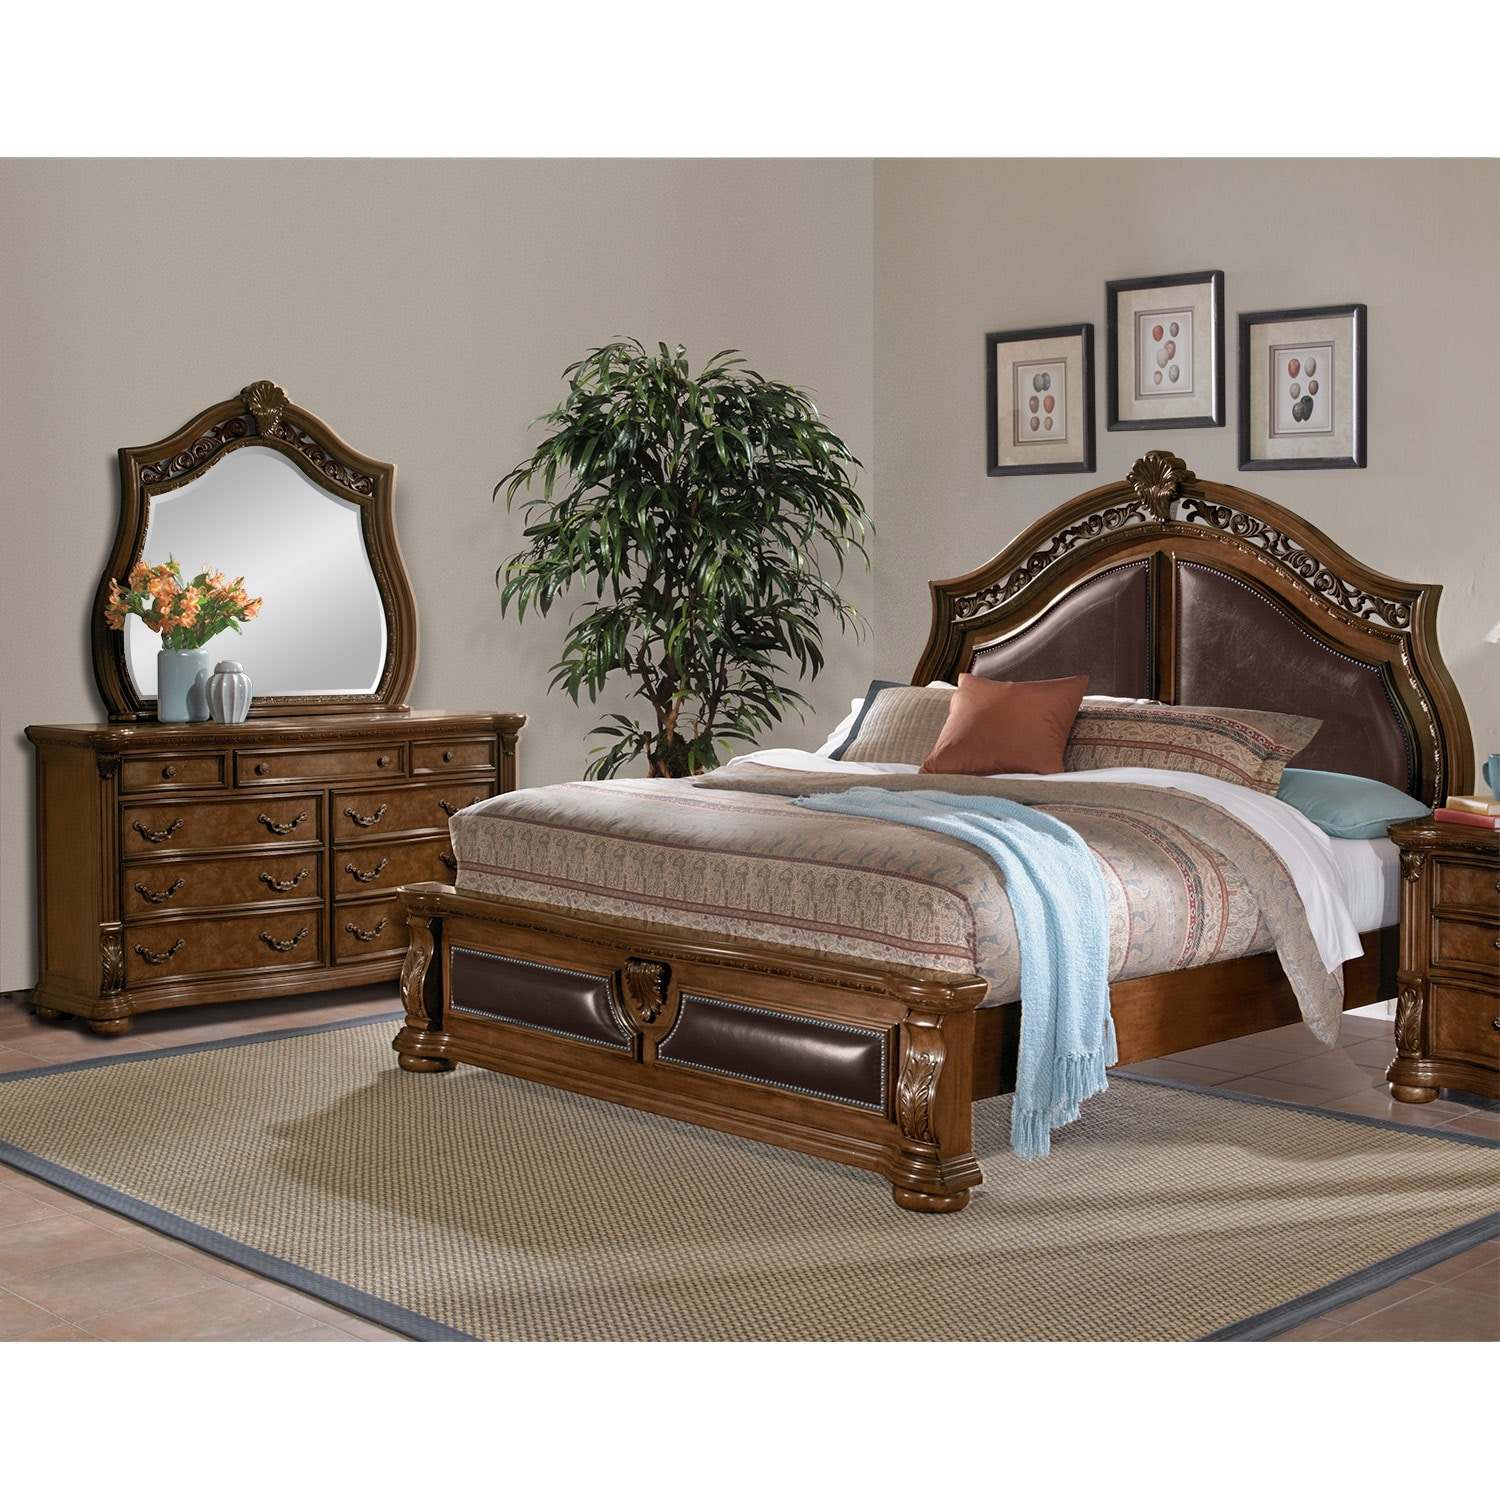 the morocco collection - pecan | value city furniture